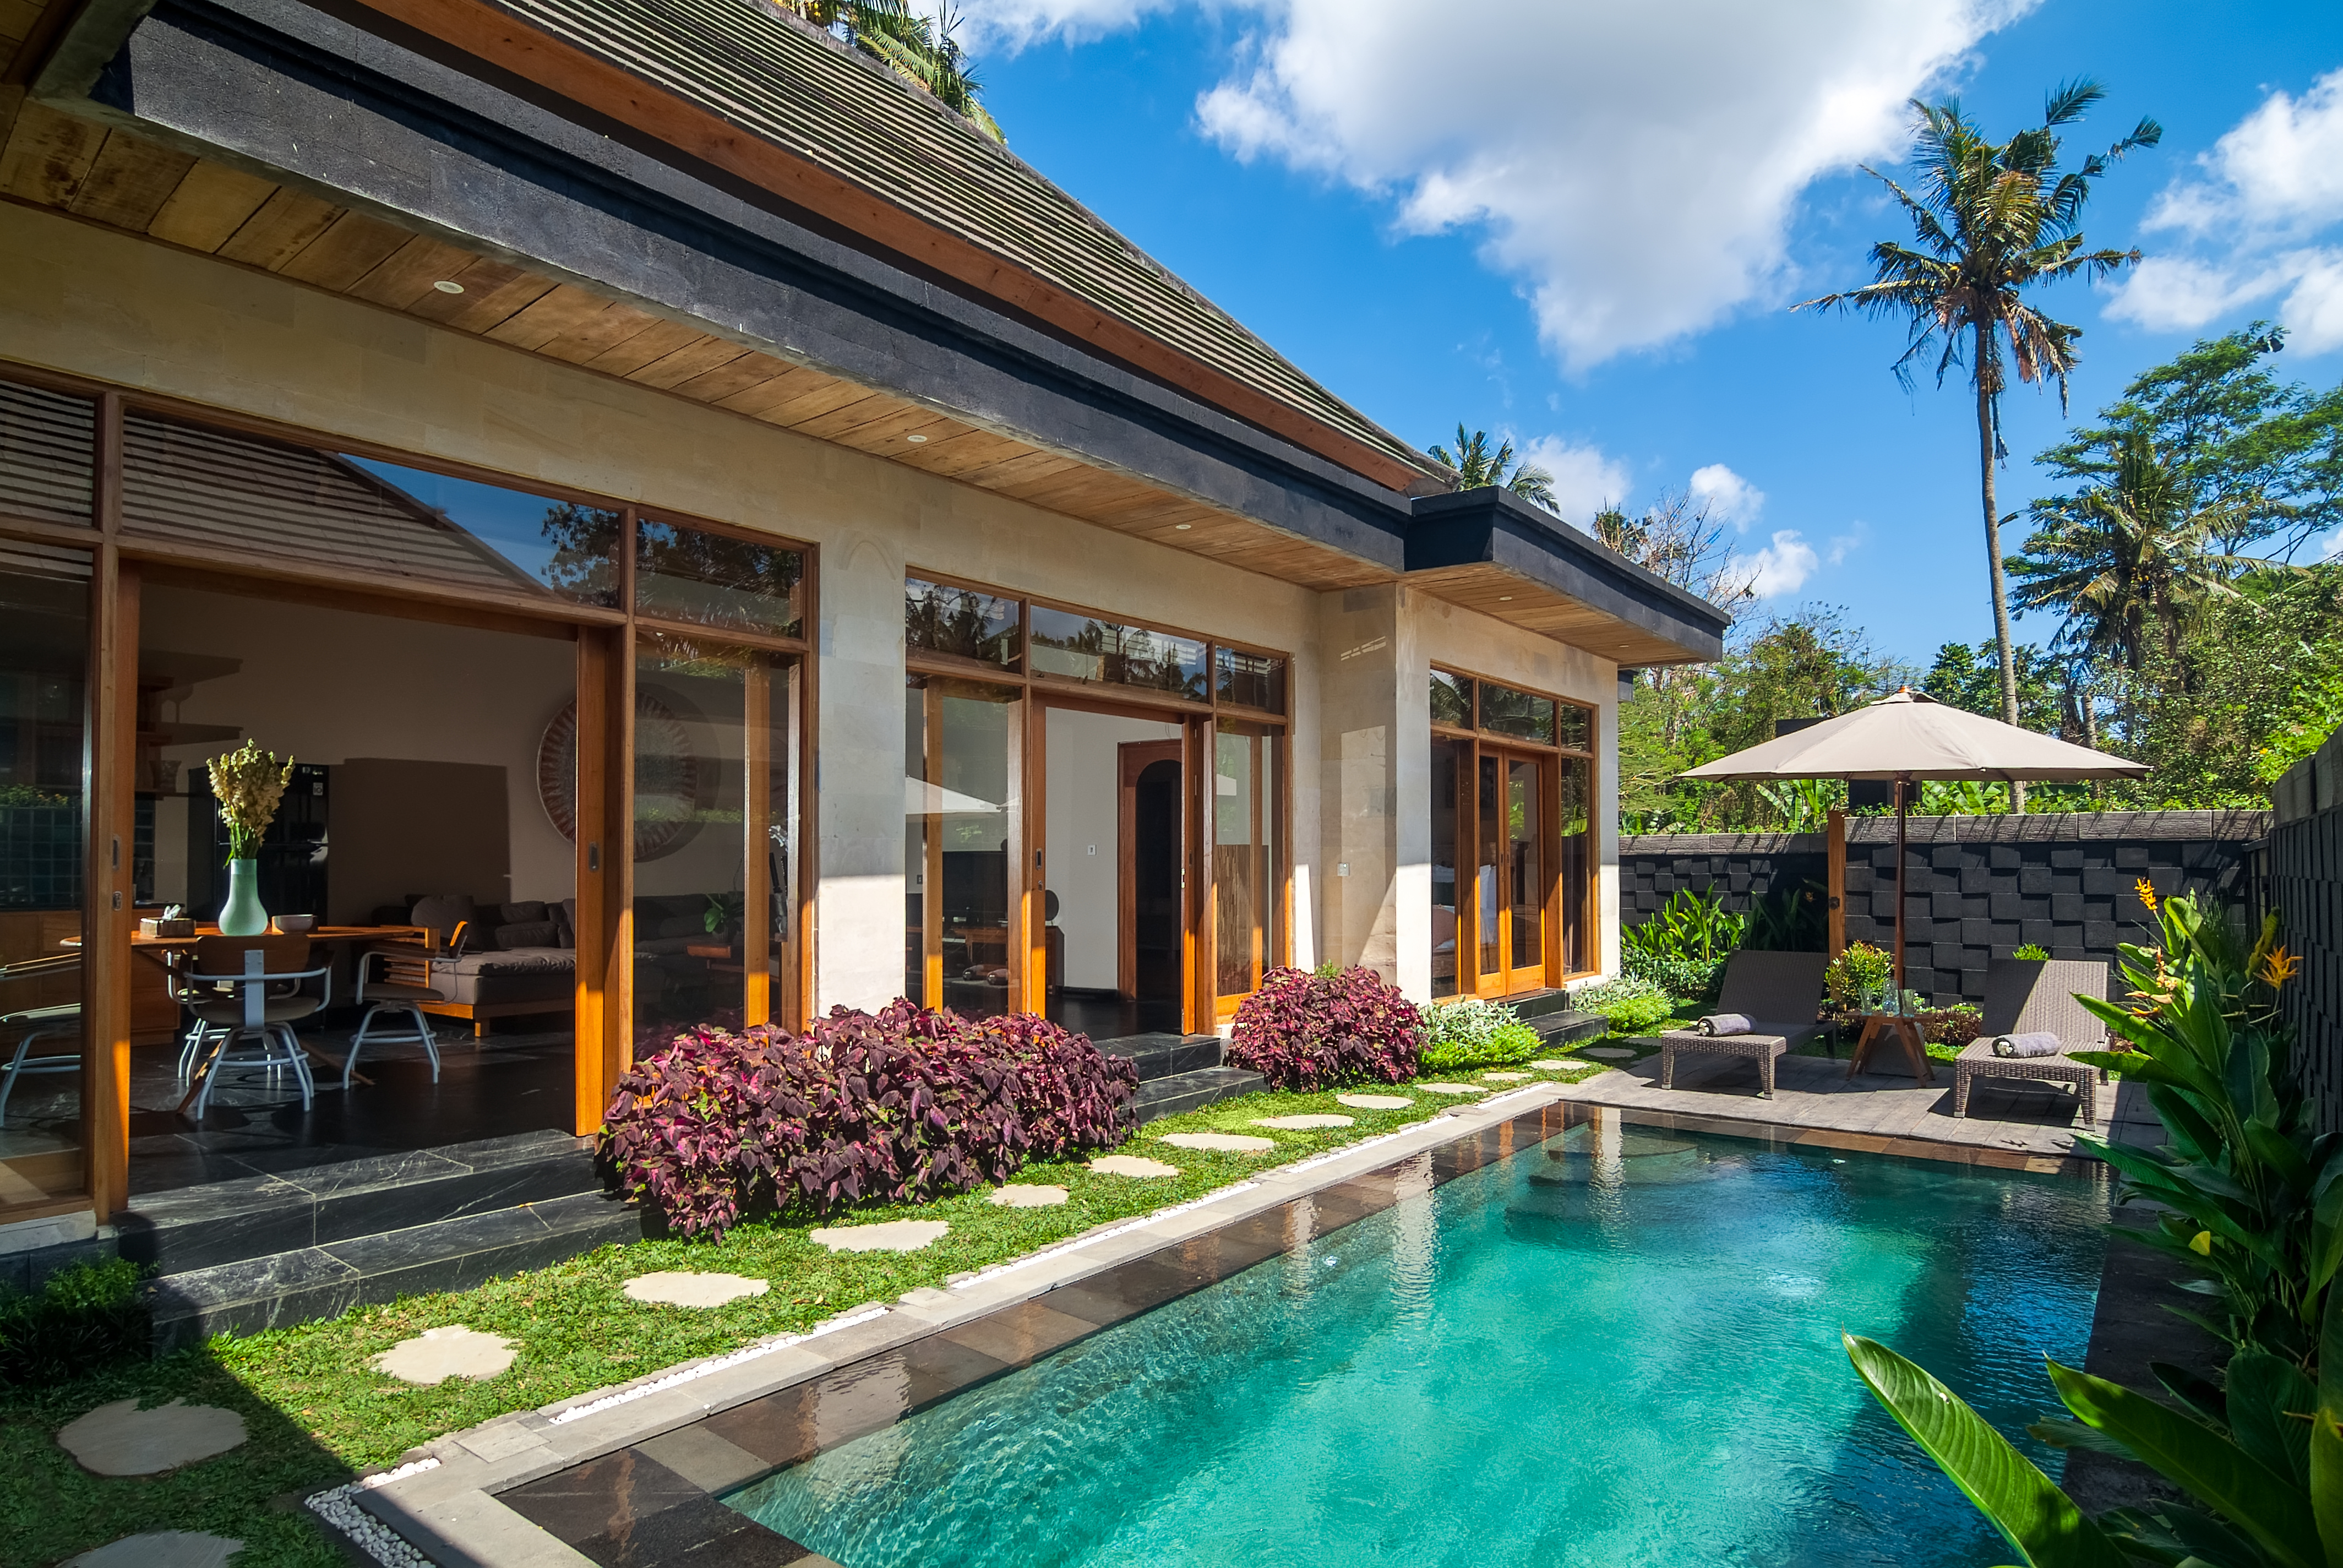 Cozy New Tropical Villa Peaceful With Nature Villas For Rent In Kecamatan Ubud Bali Indonesia